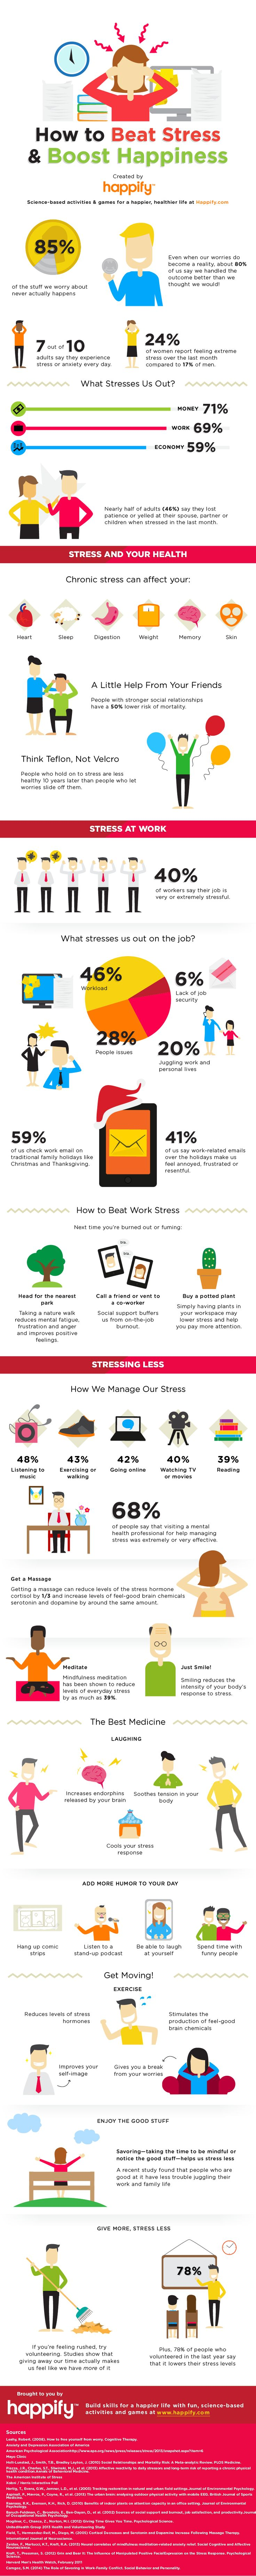 Don't Worry, Be Happy! This Infographic Tells You How to Avoid Stress & Live Happier